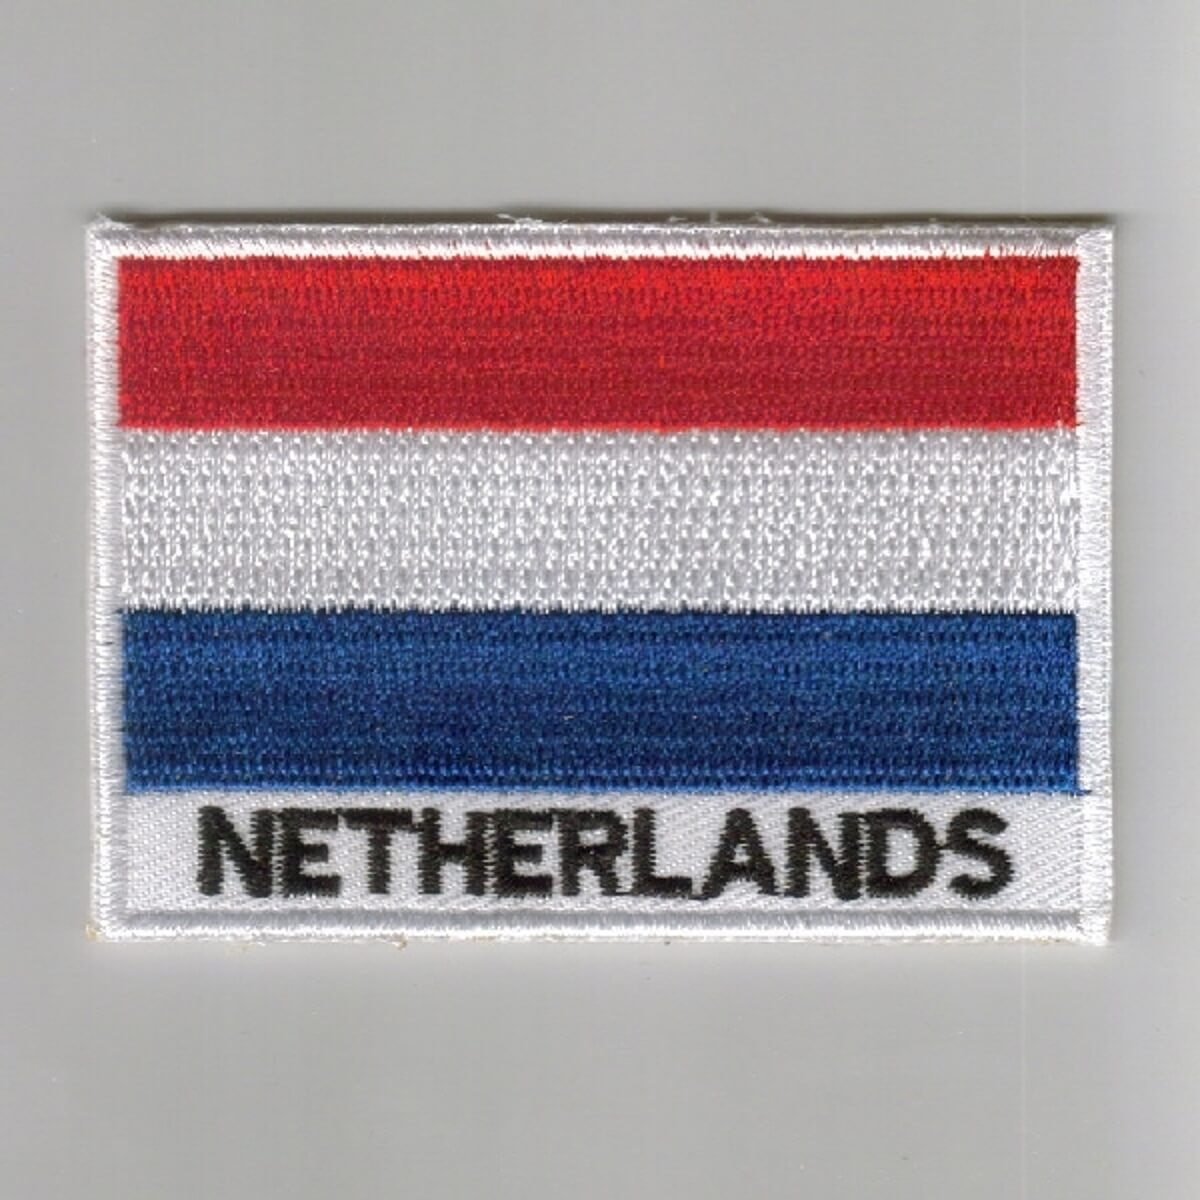 NEWFOUNDLAND Country Flag OVAL SHIELD Embroidered Iron on Patch Crest Badge WITH